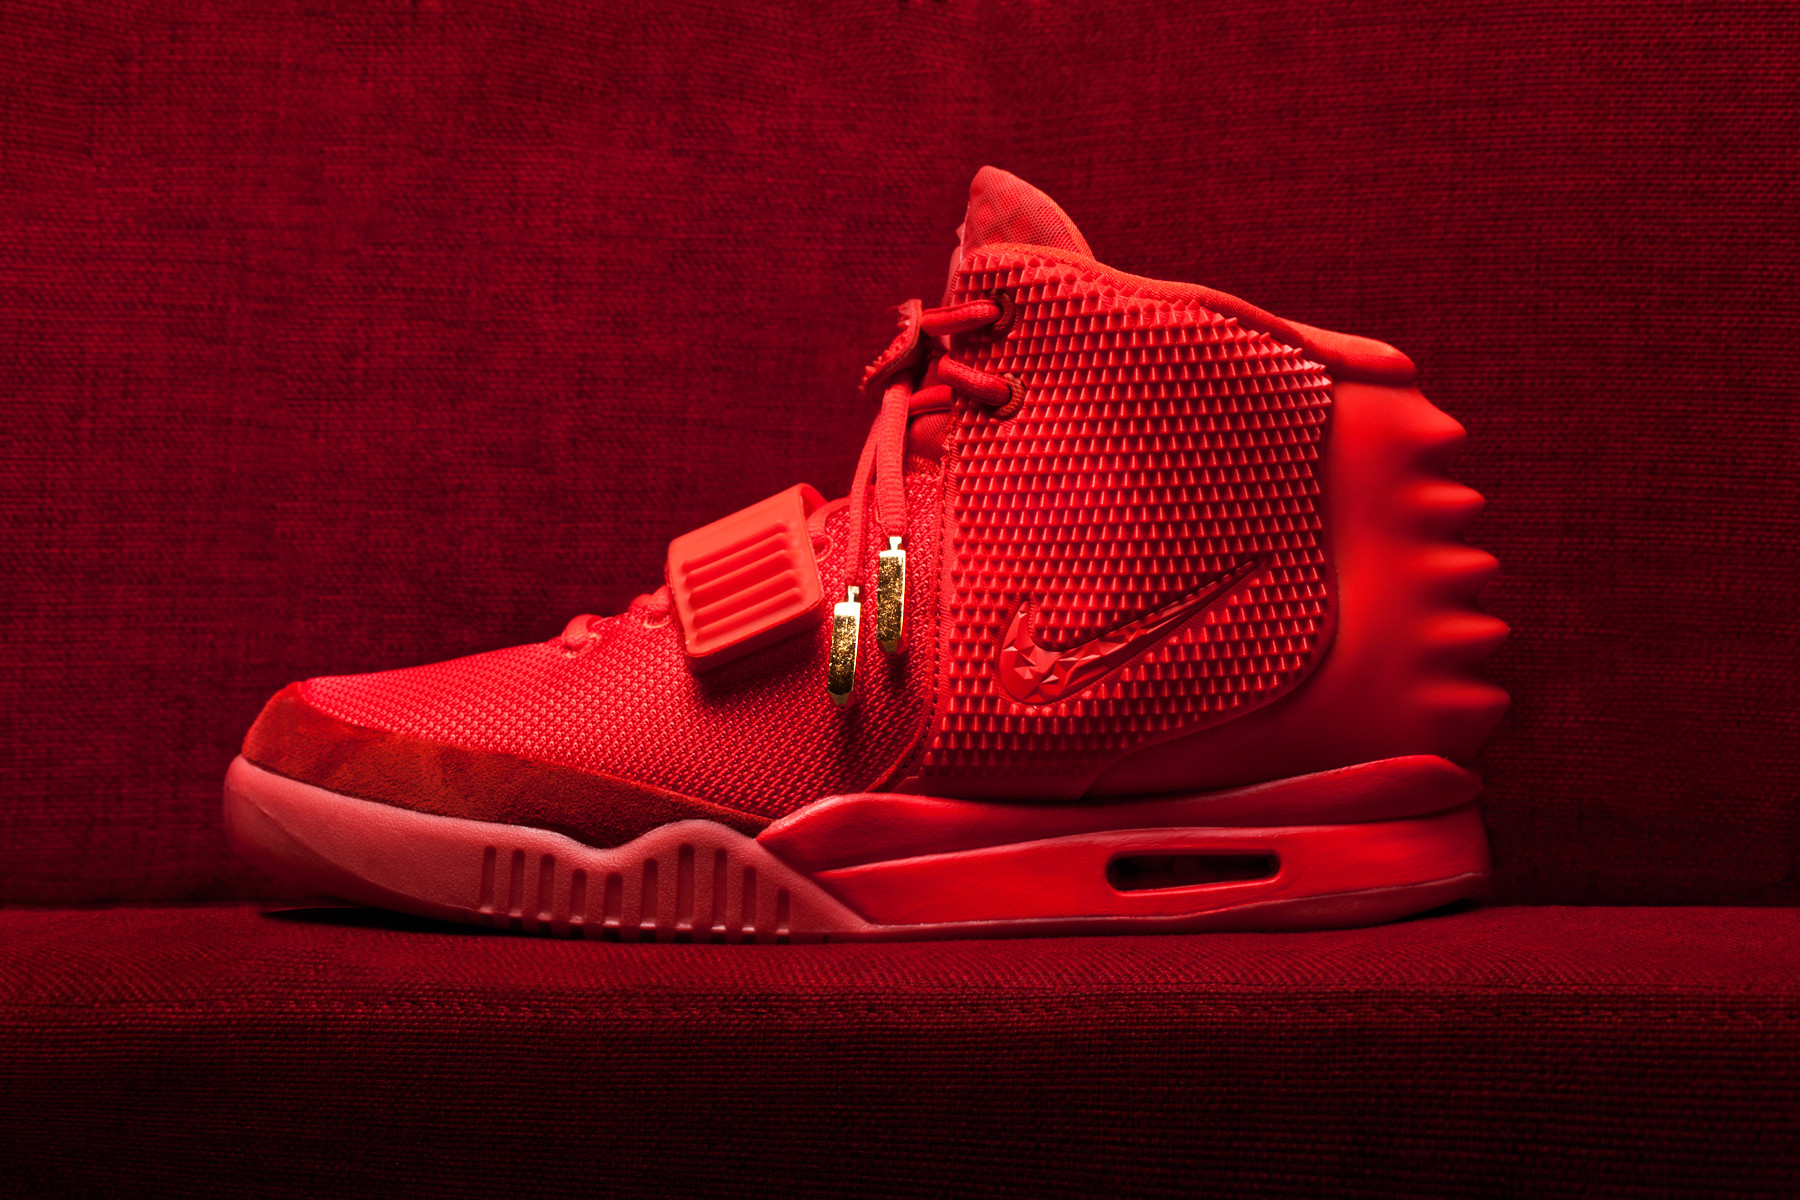 Shop \u003e yeezy red october 2 price- Off